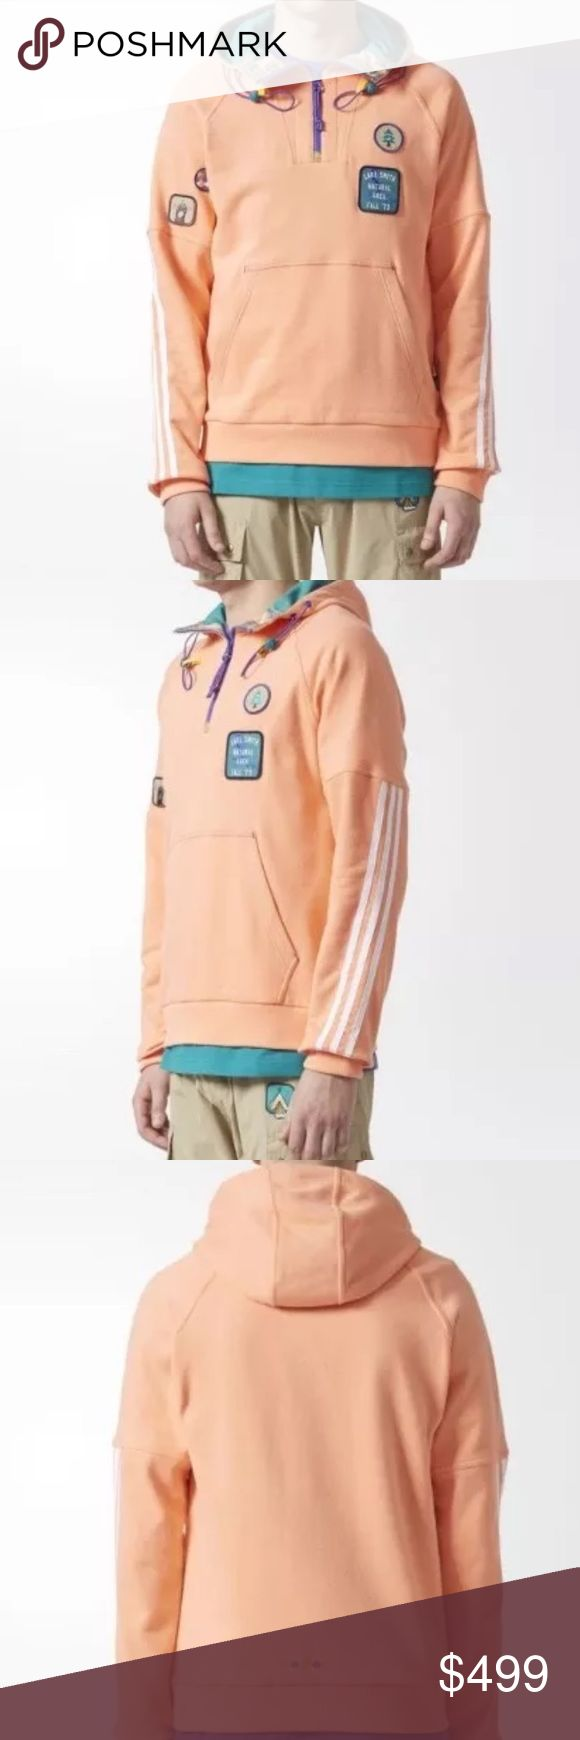 adidas x Pharrell Williams Human Race Hoodie Large Selling an extra LARGE Adidas x Pharrell Williams Human Race Hoodie LARGE. This rare find is SOLD OUT at adidas. Color is Sun Glow.  Kangaroo pocket Half zip with reflective bungee hood-adjuster cords and contrast hood lining Raglan sleeves Ribbed cuffs and hem Pharrell Williams-inspired appliqué badges and star embroidery detailing Regular fit 60% cotton / 40% polyester French terry Imported Product color: Sun Glow / Eqt Green adidas Shirts…